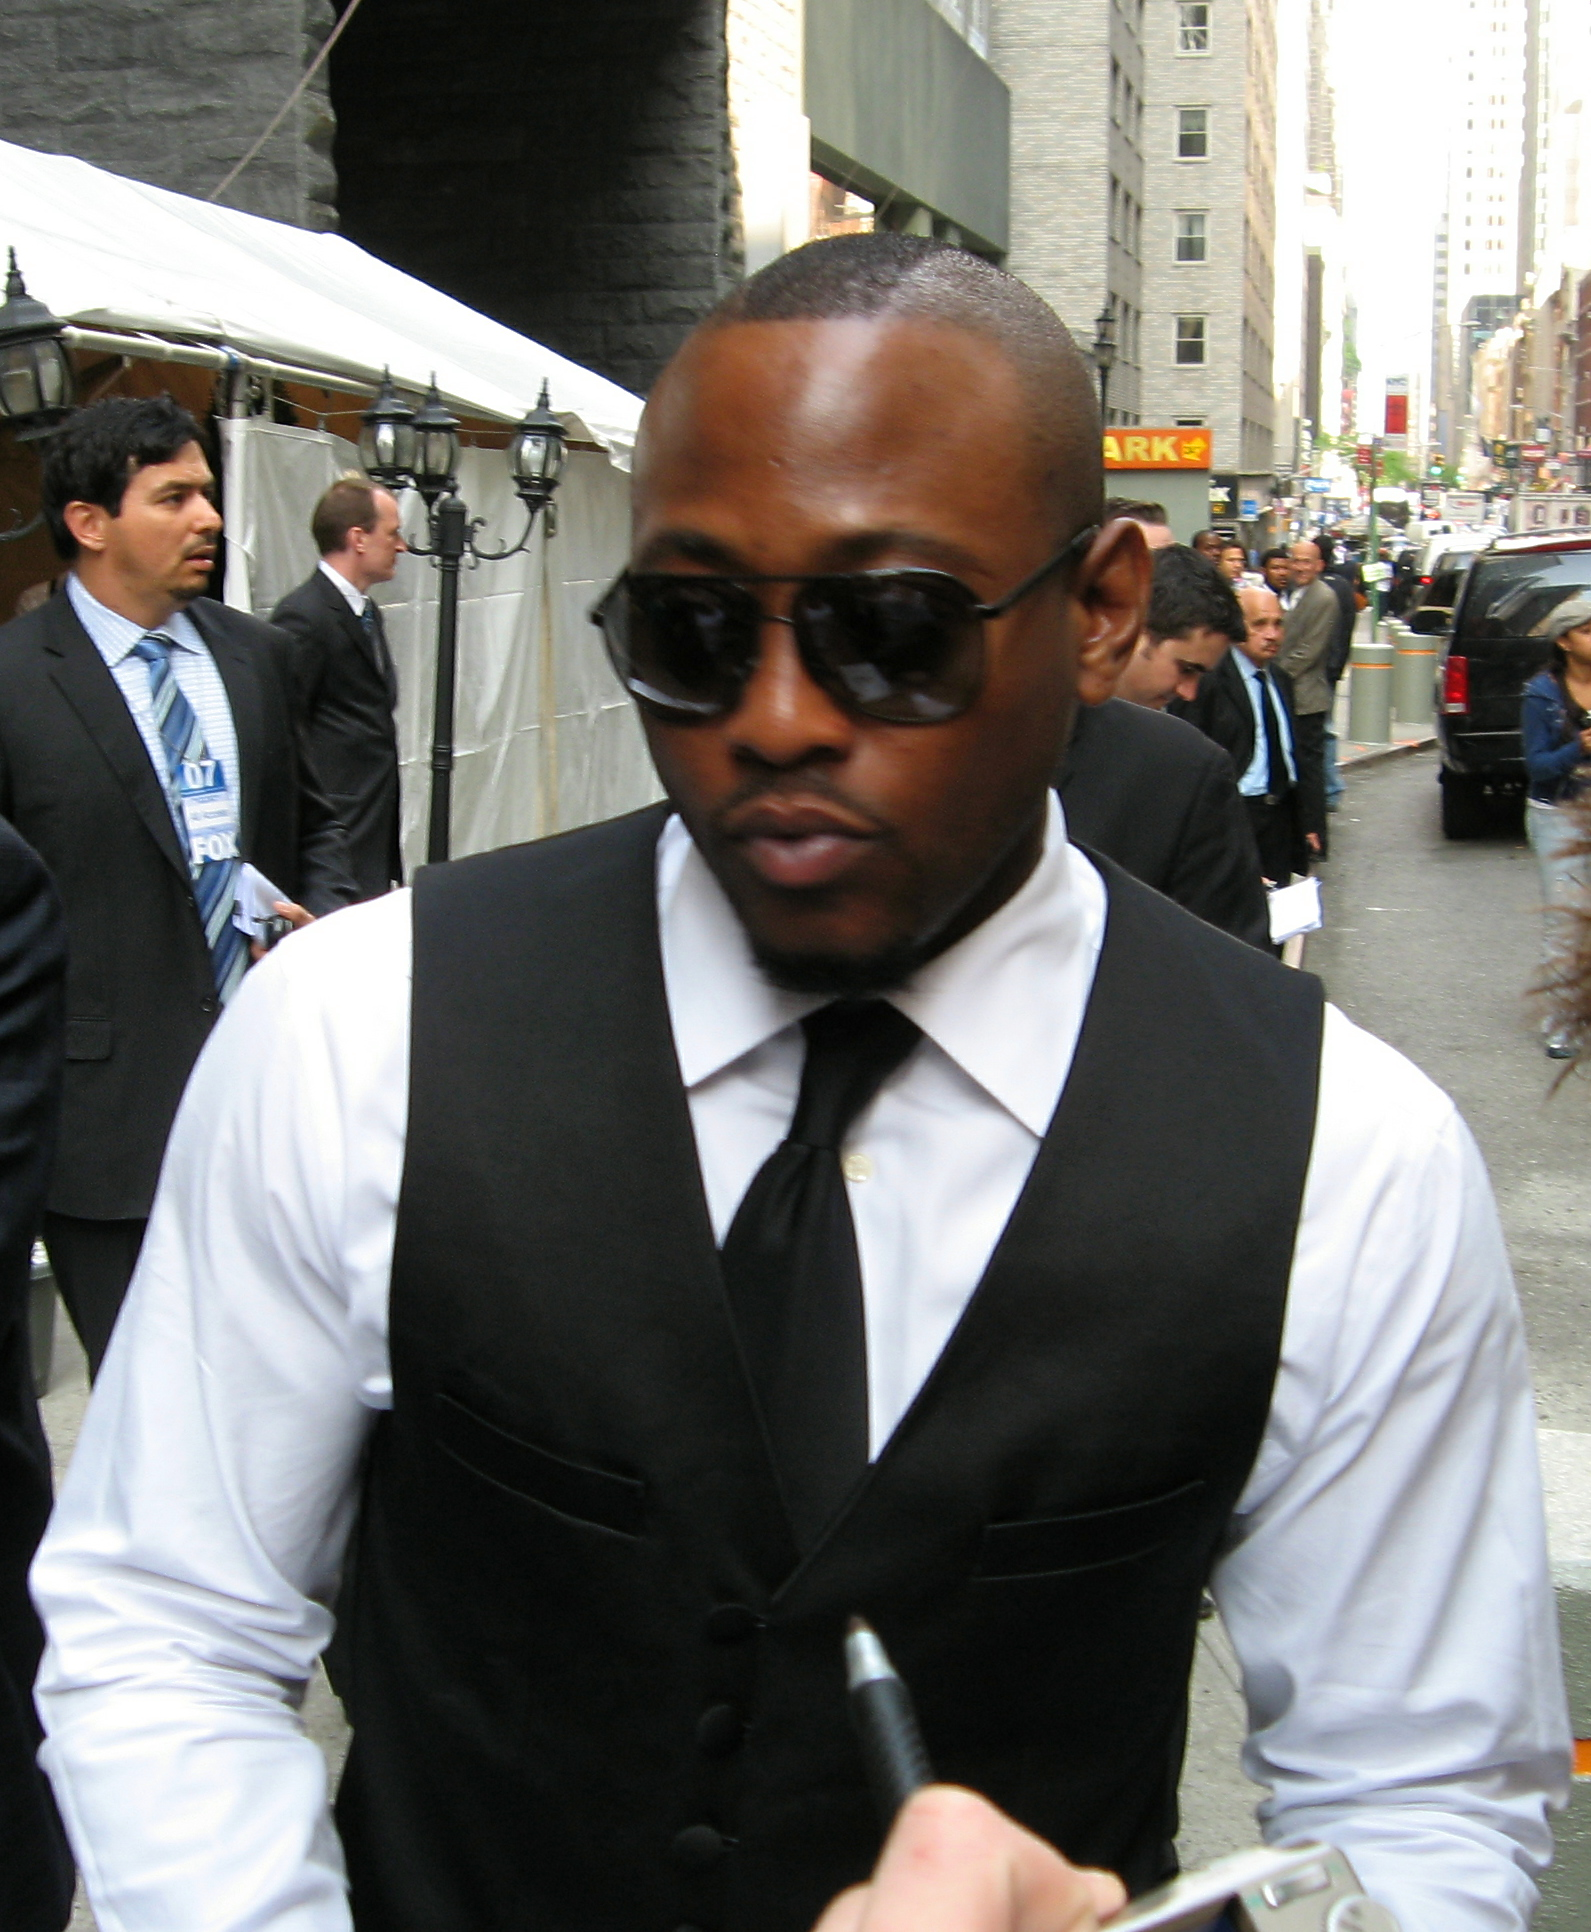 Omar Epps - Images Hot